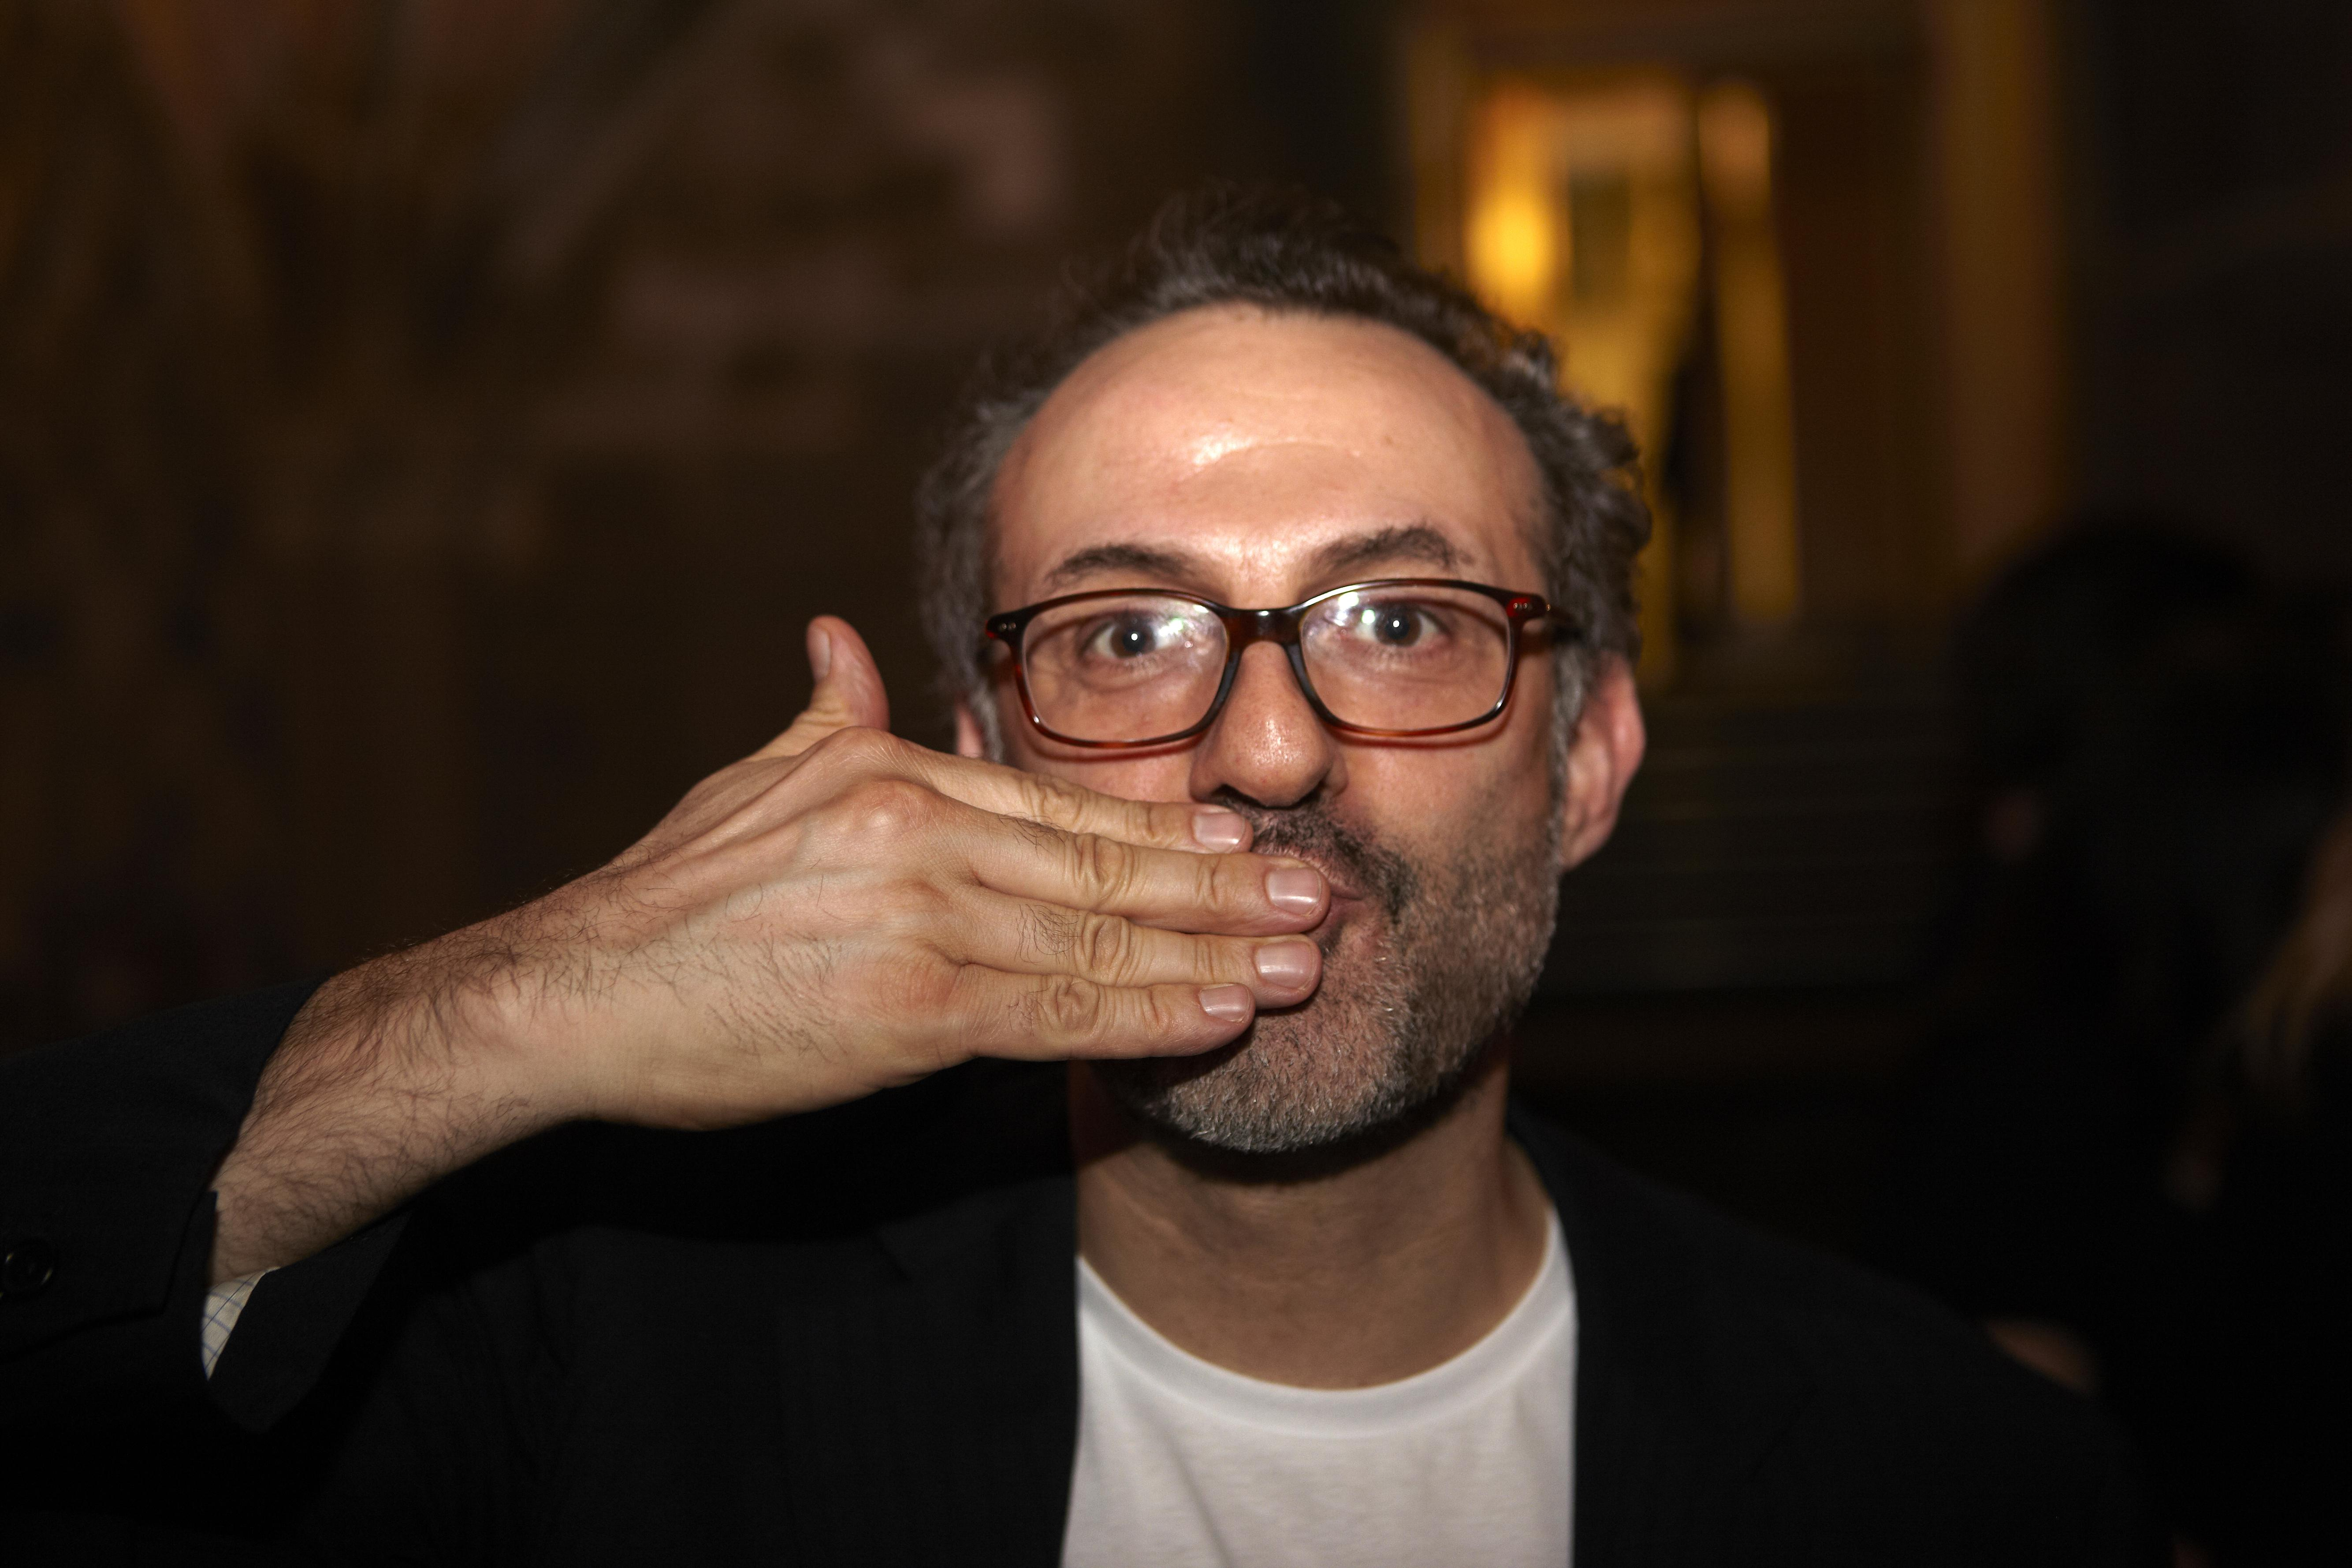 The 55-year old son of father (?) and mother(?) Massimo Bottura in 2018 photo. Massimo Bottura earned a  million dollar salary - leaving the net worth at 16 million in 2018